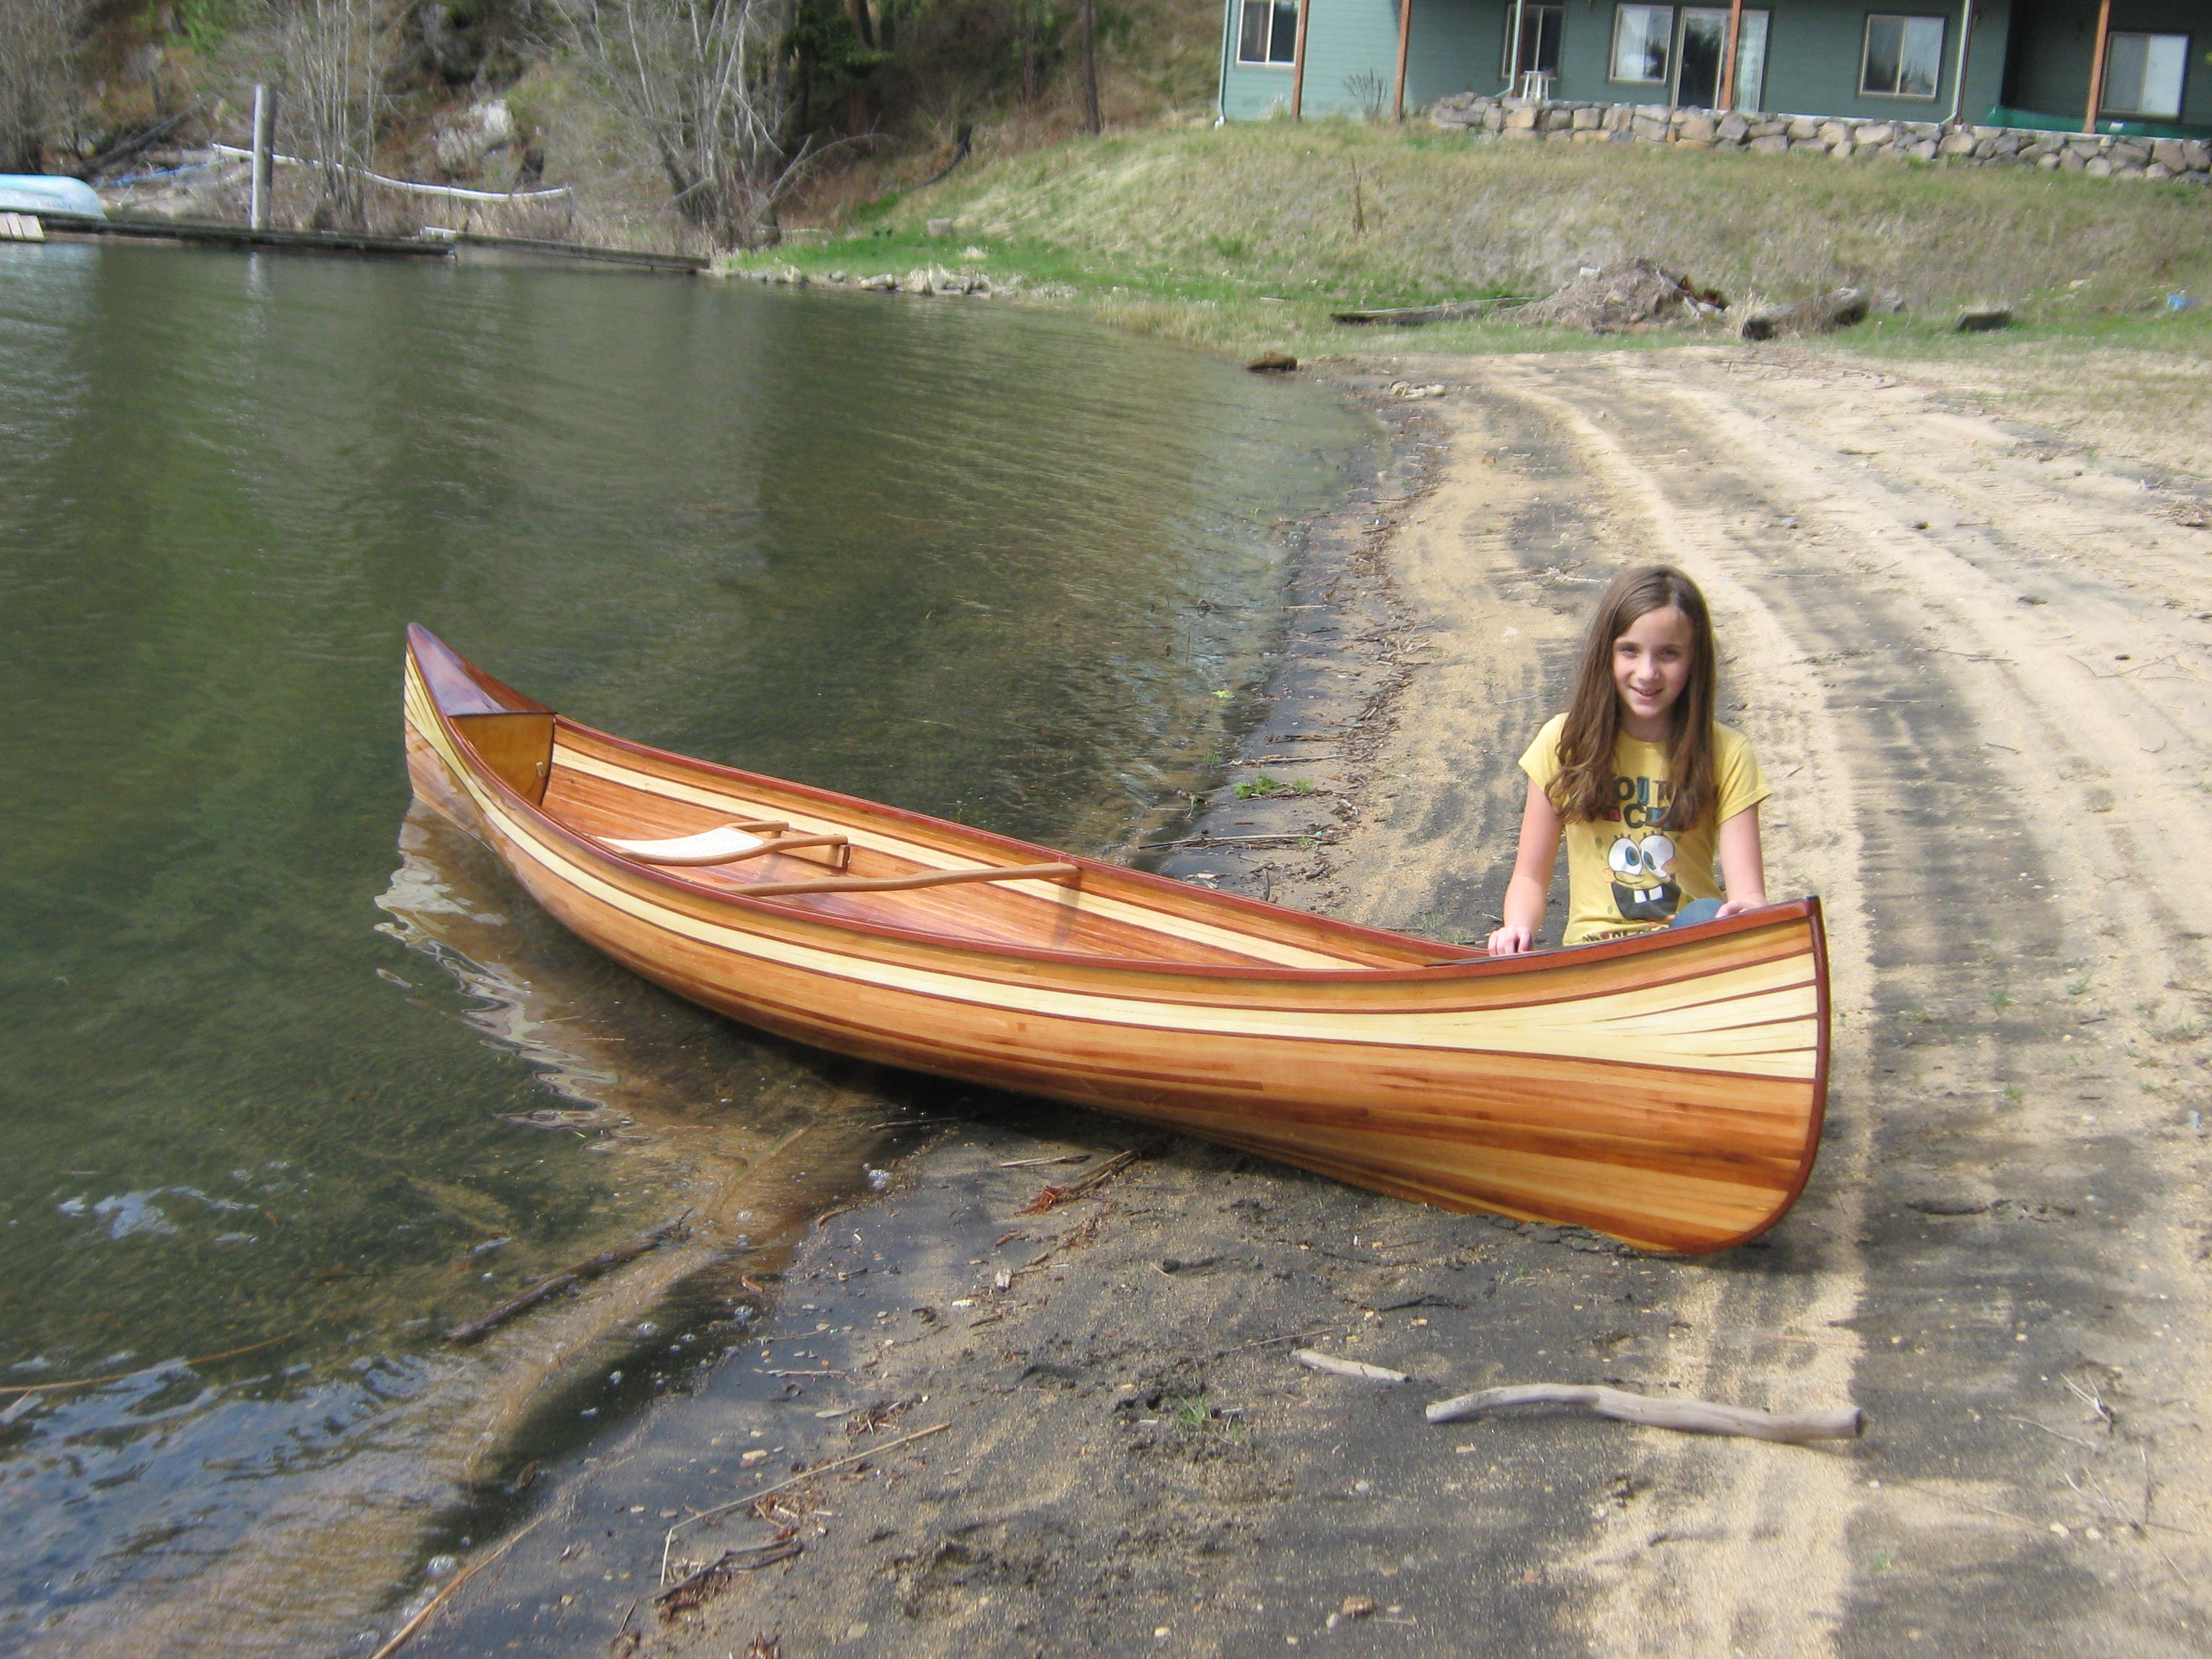 Heirloom Paddle Sports | Cedar Strip Kayaks, Stand-up Paddle Boards (SUP) & Canoes